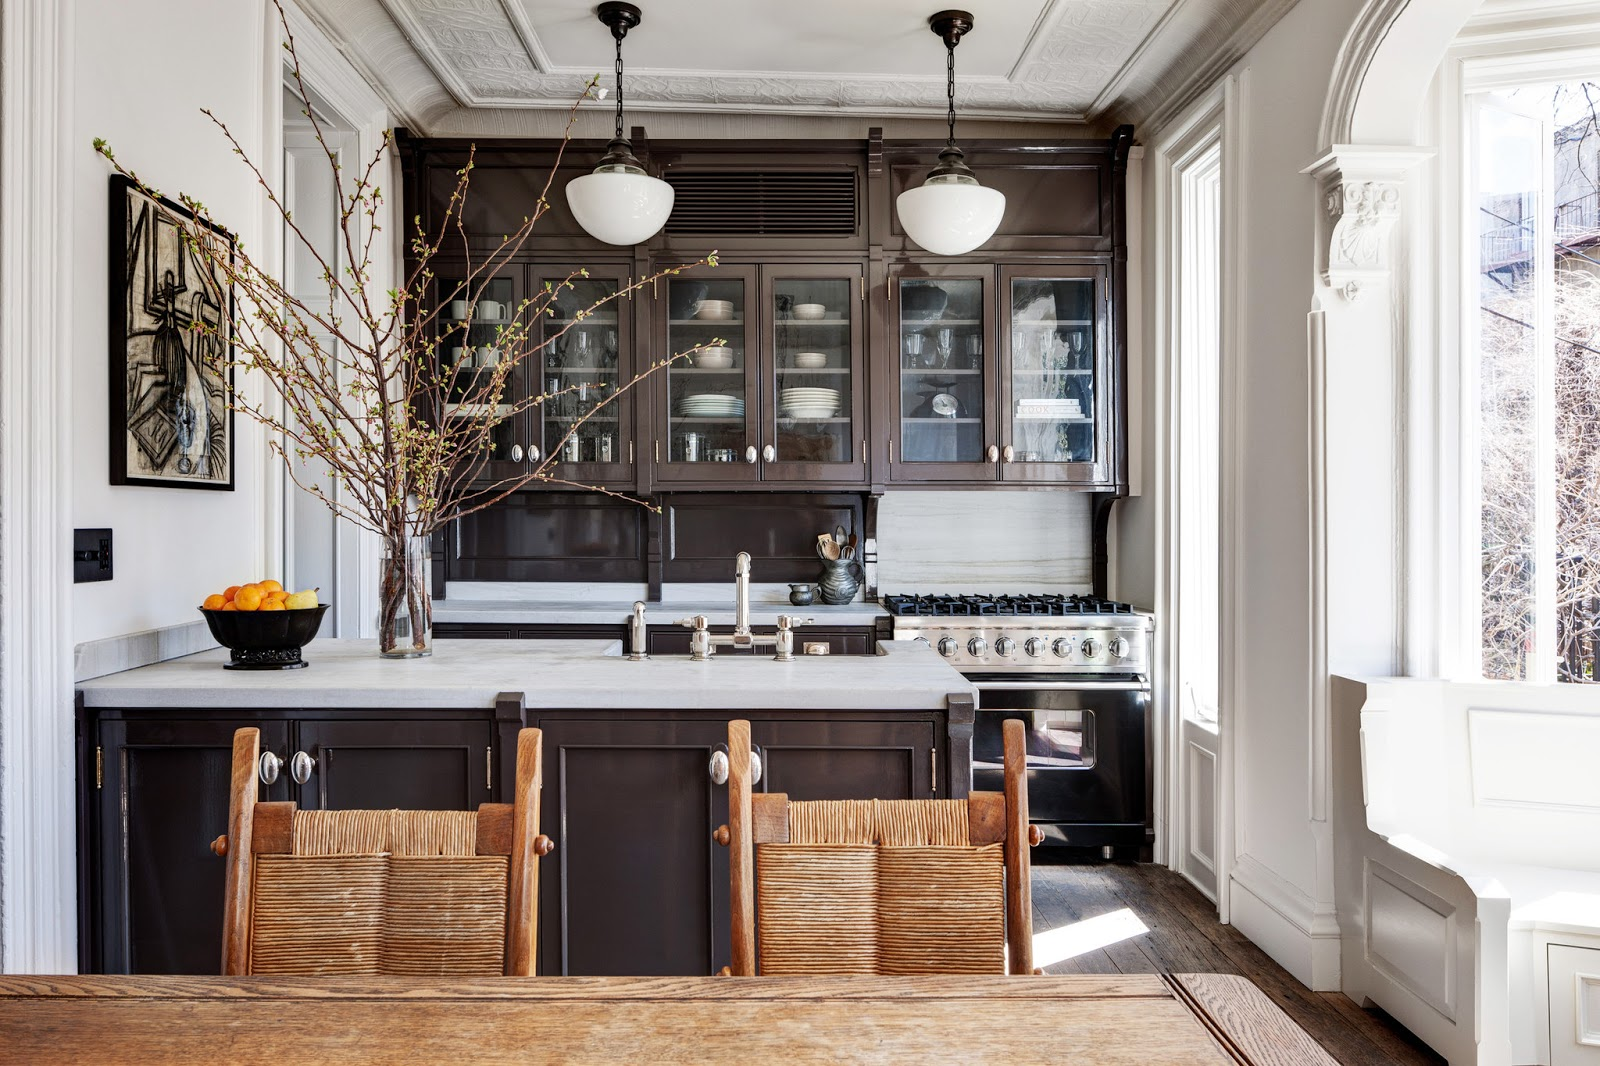 Decor a brooklyn brownstone renovation by roman and for New york brownstone interior design